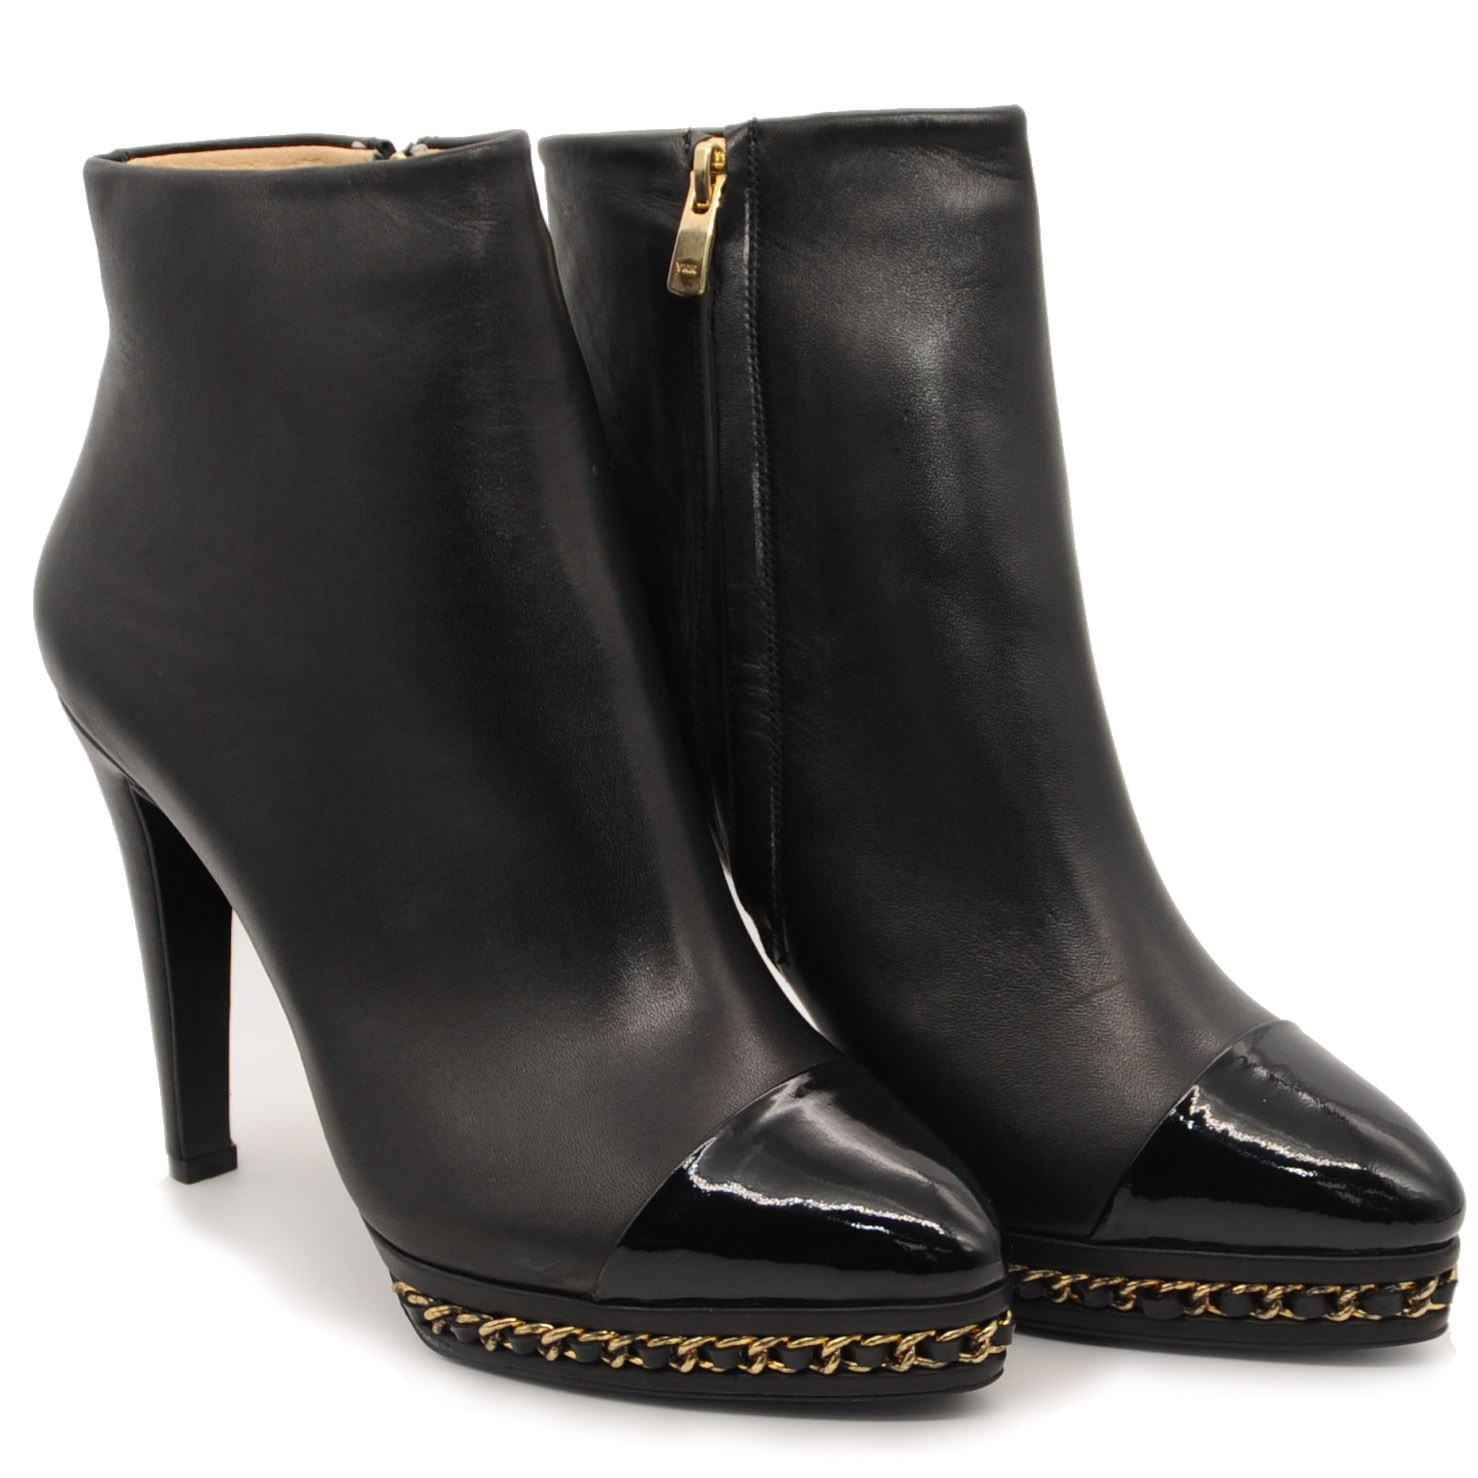 Chic Stylish Ankle Leather Boots with High Heels Side Zipped and Coloured Gold Chain in Sole